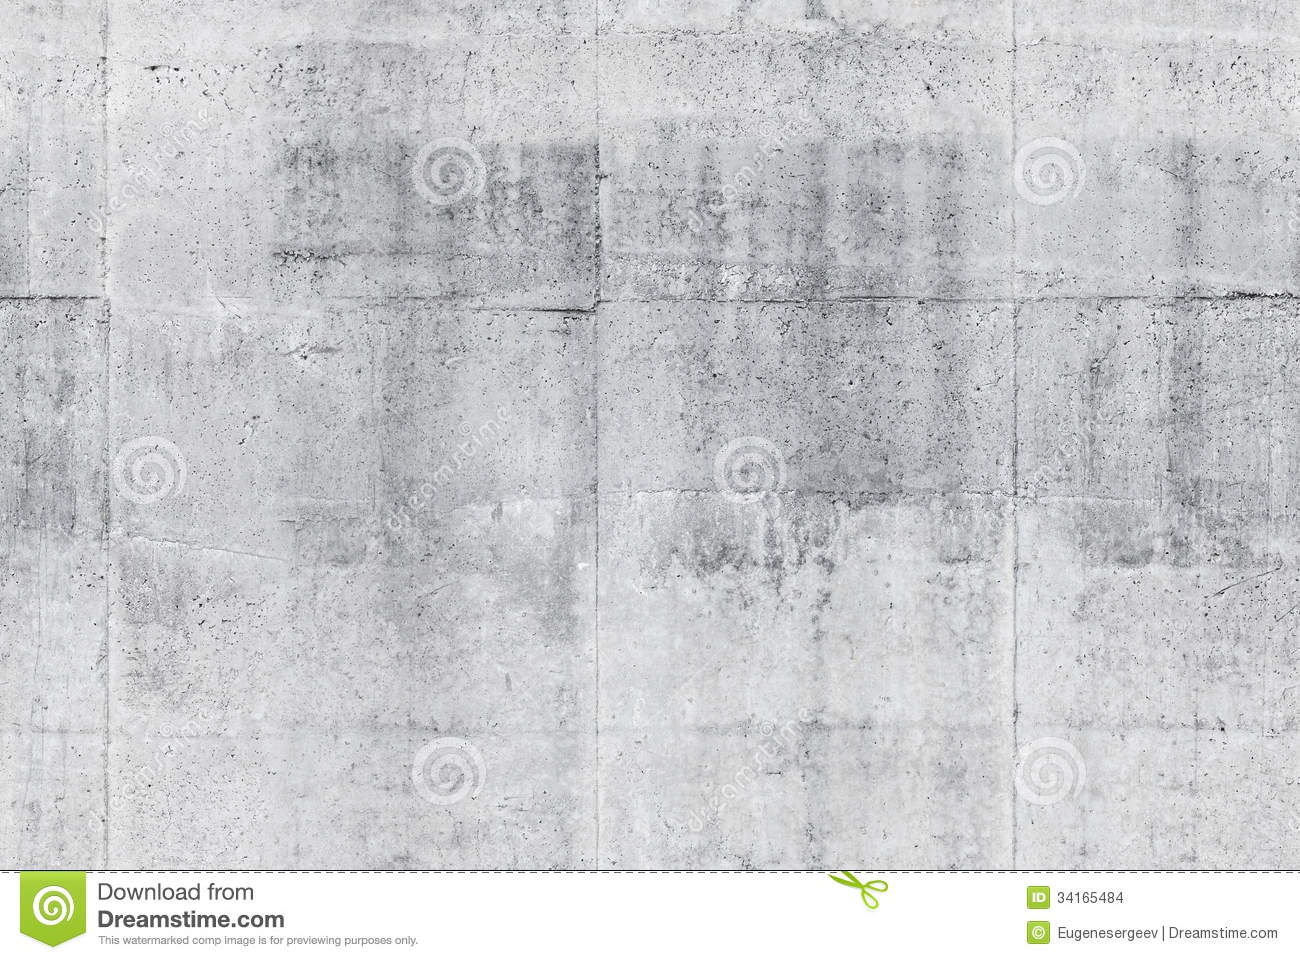 Download Seamless Gray Concrete Wall Background Texture Stock Photo - Image of background, ordinary: 34165484